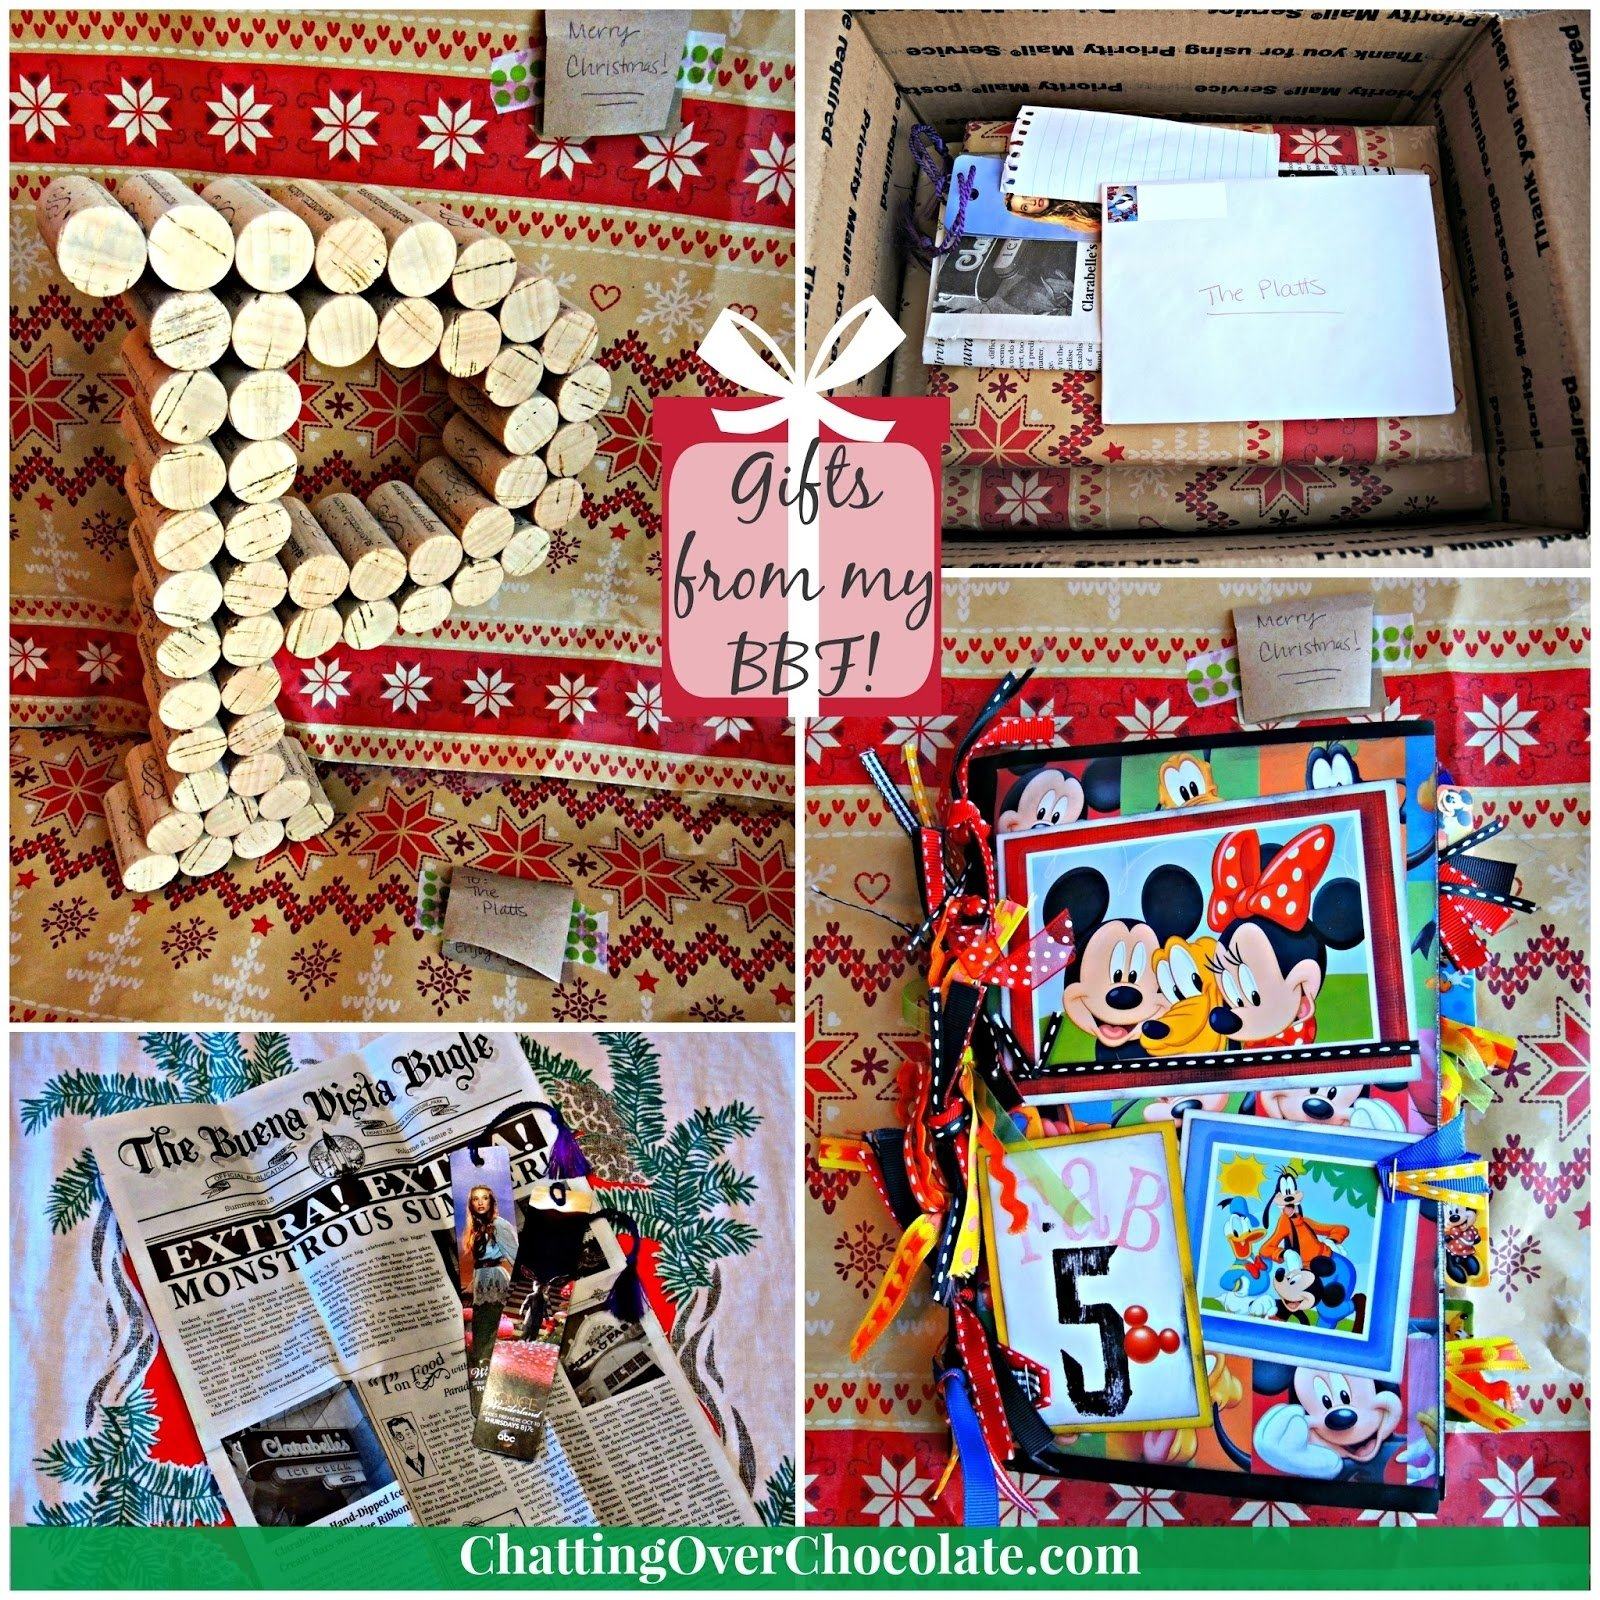 10 most recommended homemade gift ideas for best friend